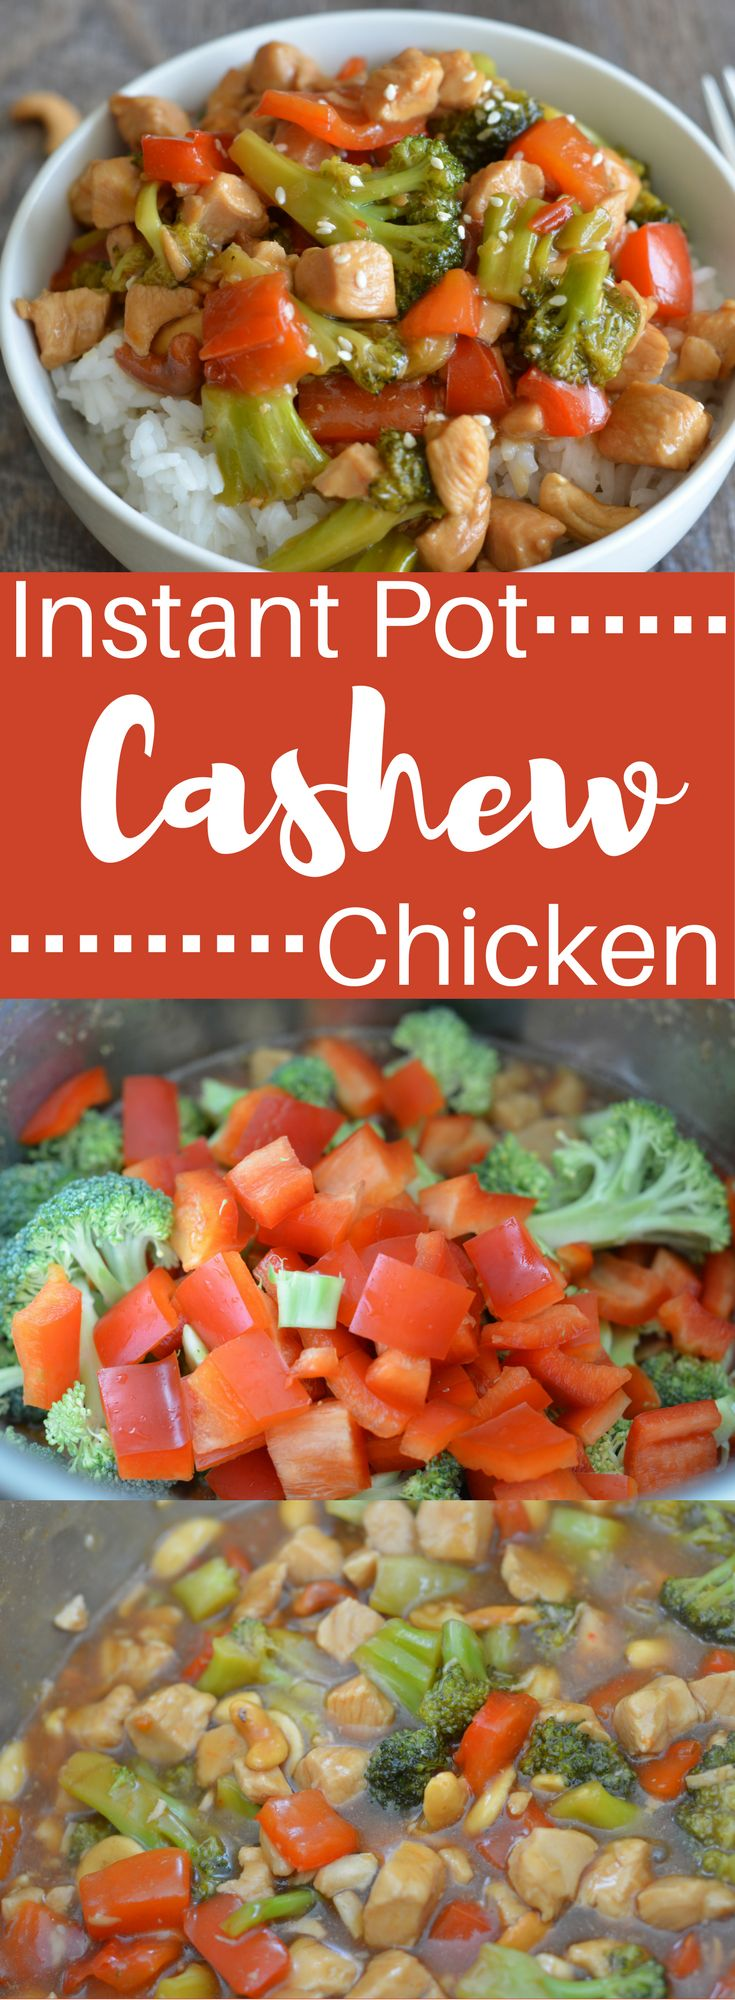 Put the phone down! Instant Pot Cashew Chicken tastes just as good, if not better than anything you can order! And, it only takes 6 mins to put together!